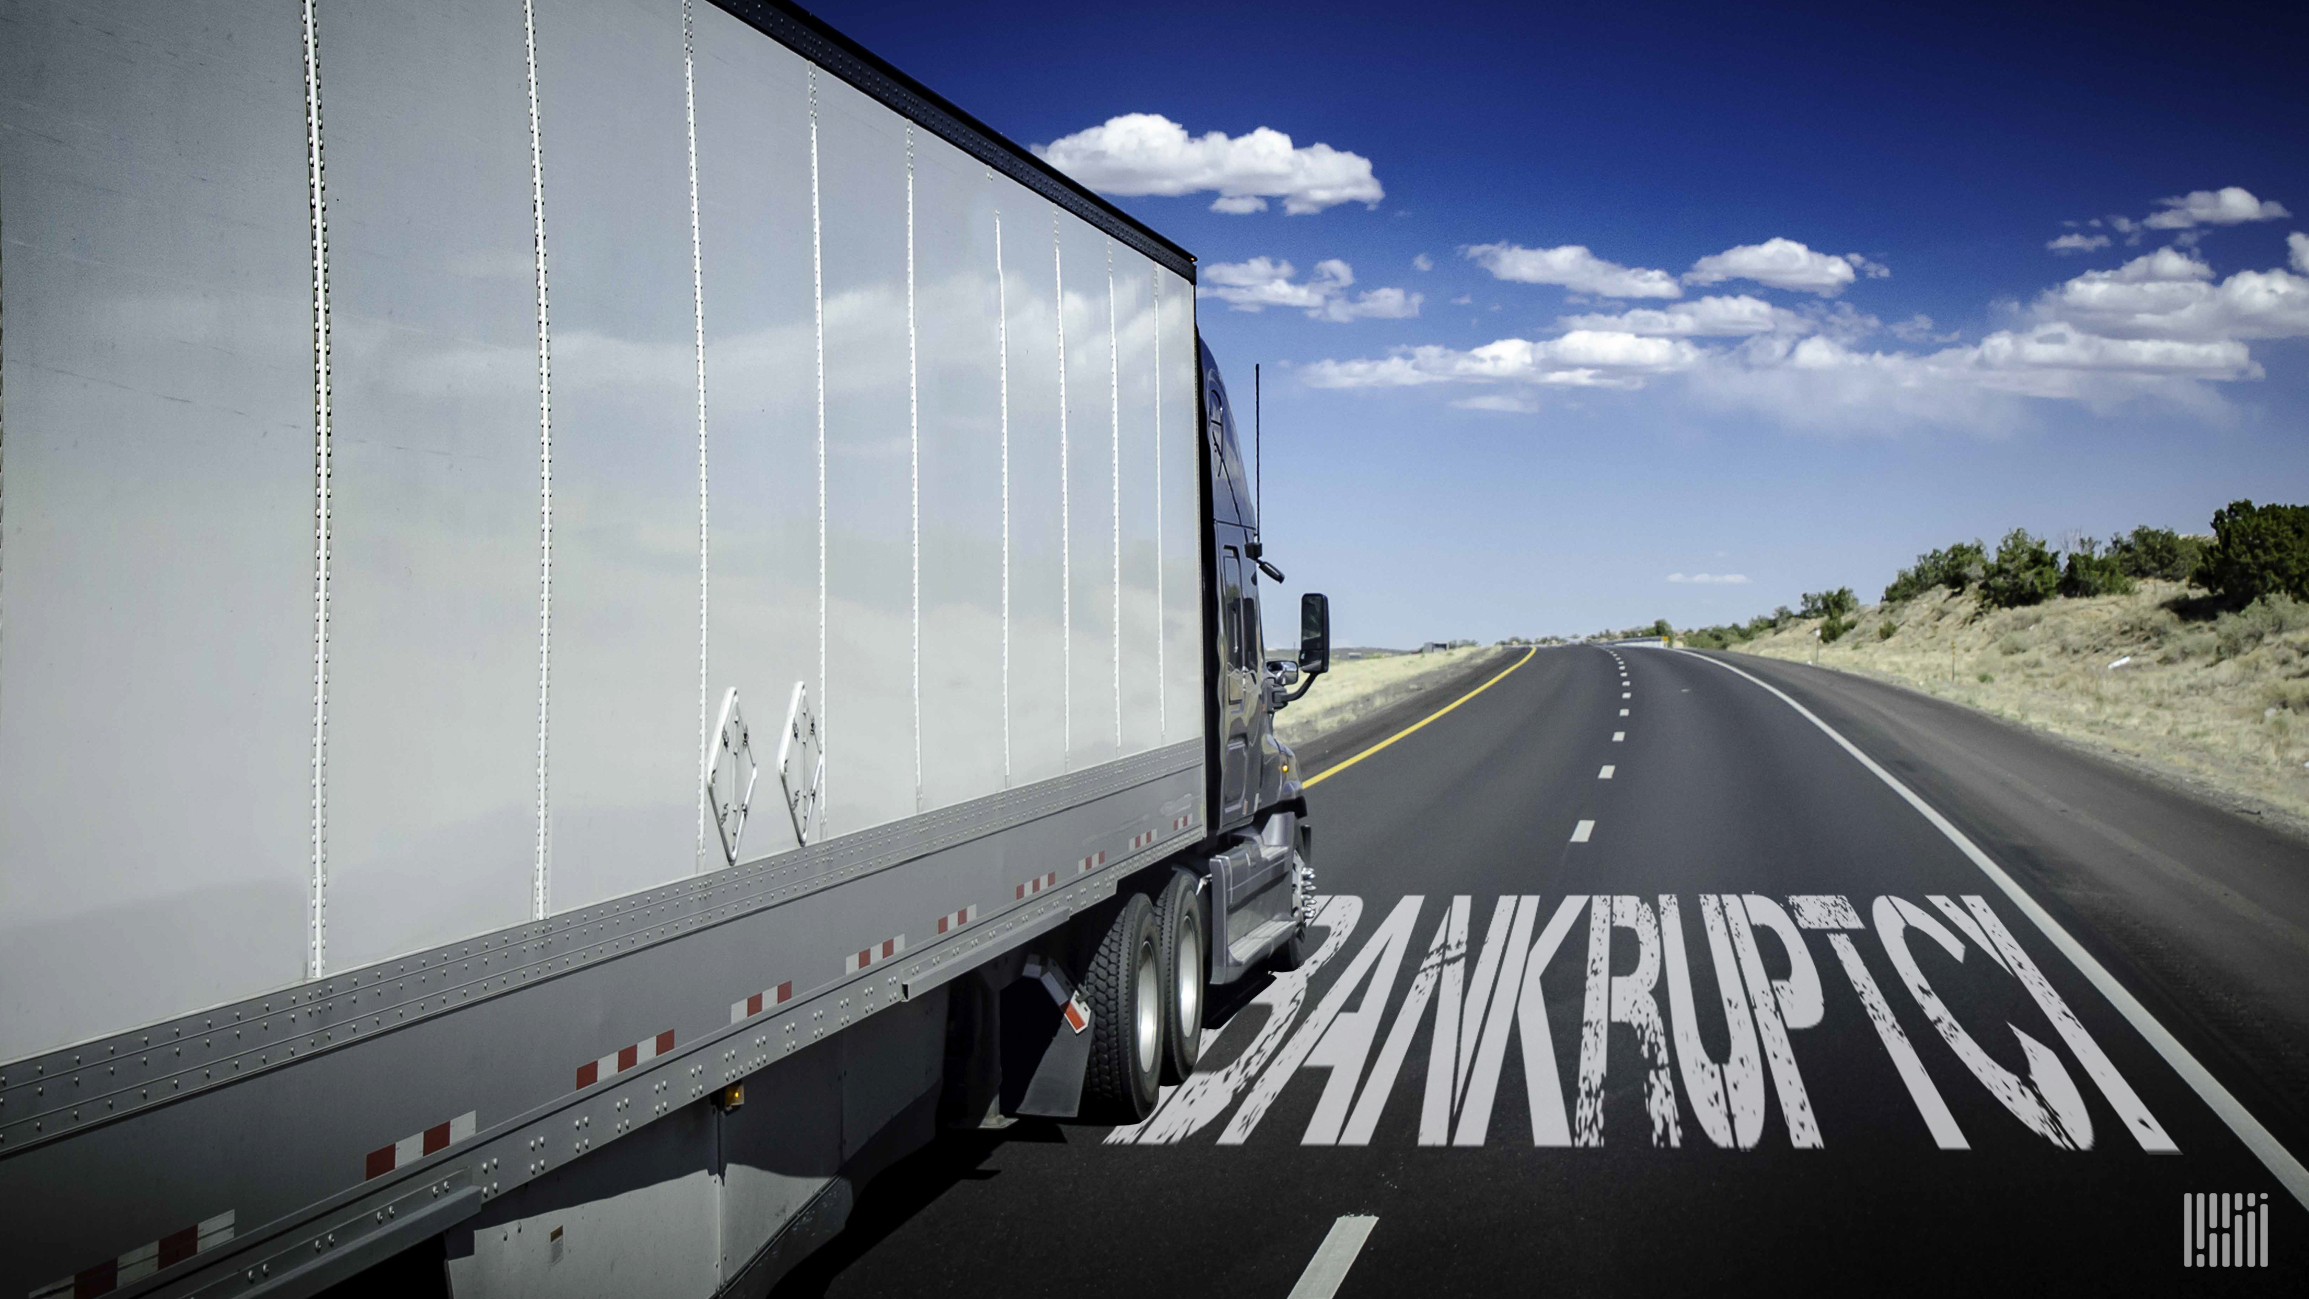 Illinois trucking company with history of HOS violations files Chapter 7